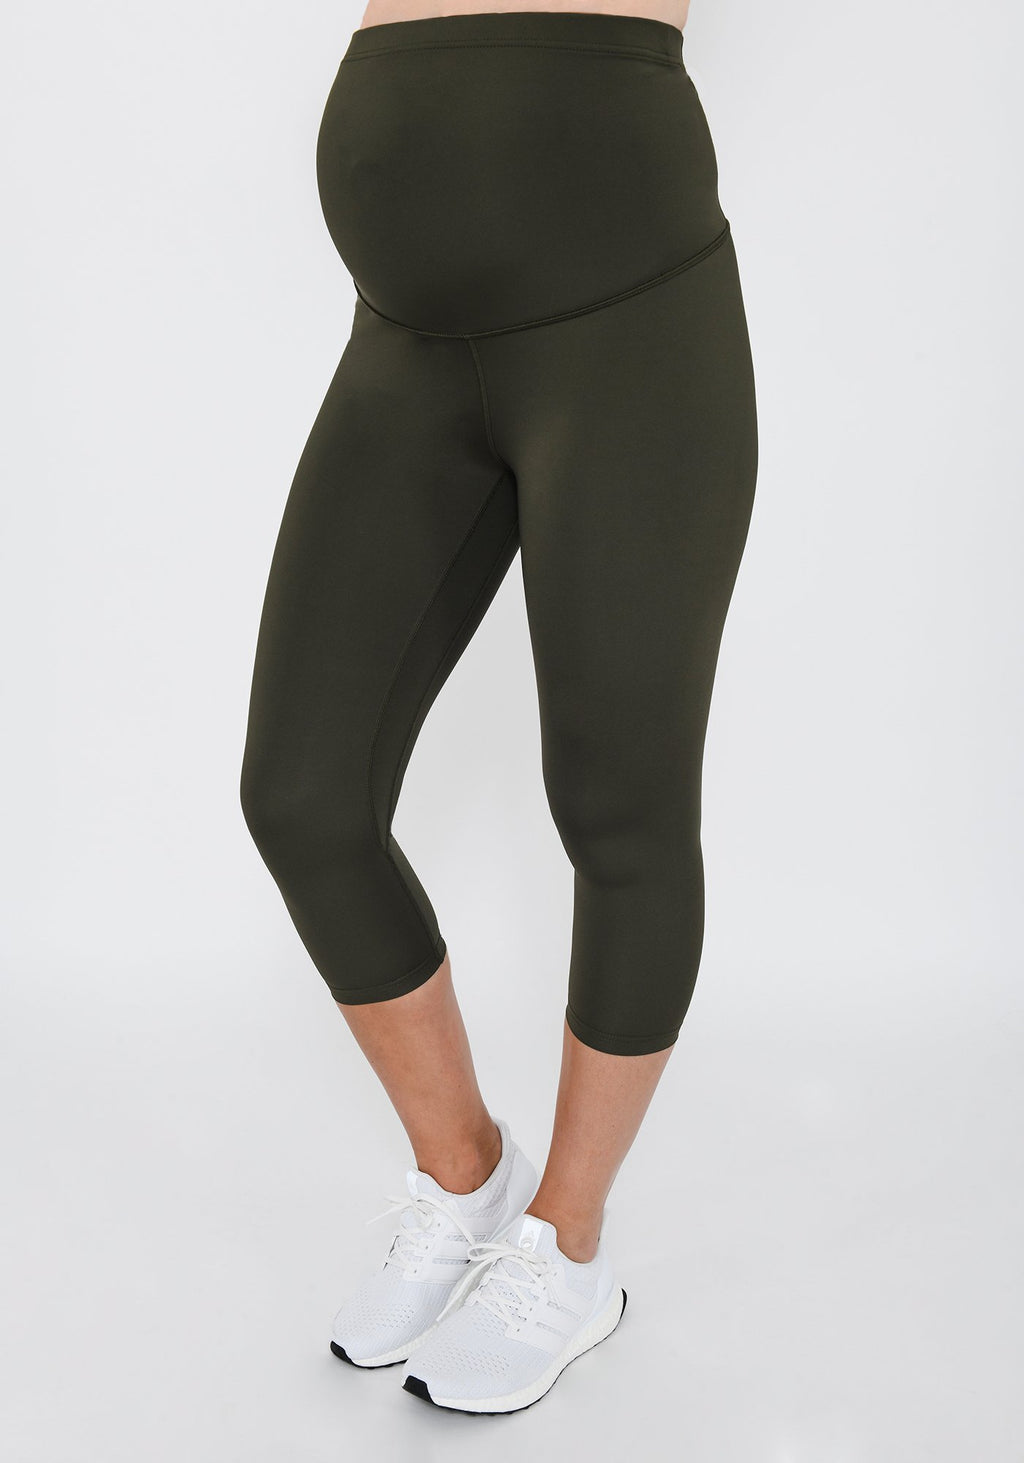 Focus Cropped Olive Green Maternity Sports Leggings